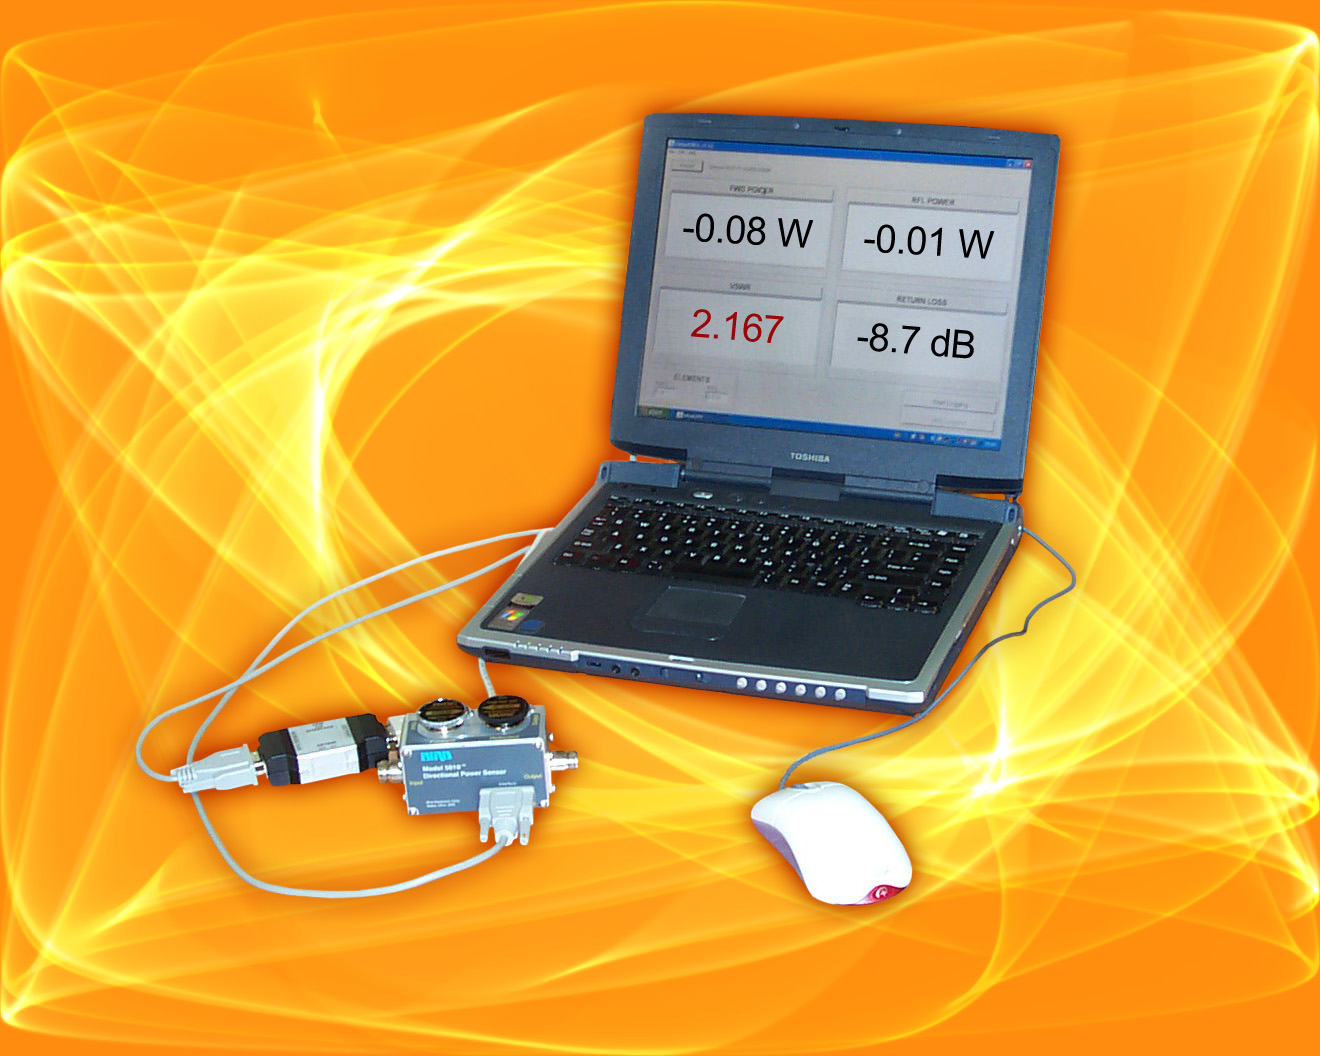 S/W allows PC's to  display power measurements